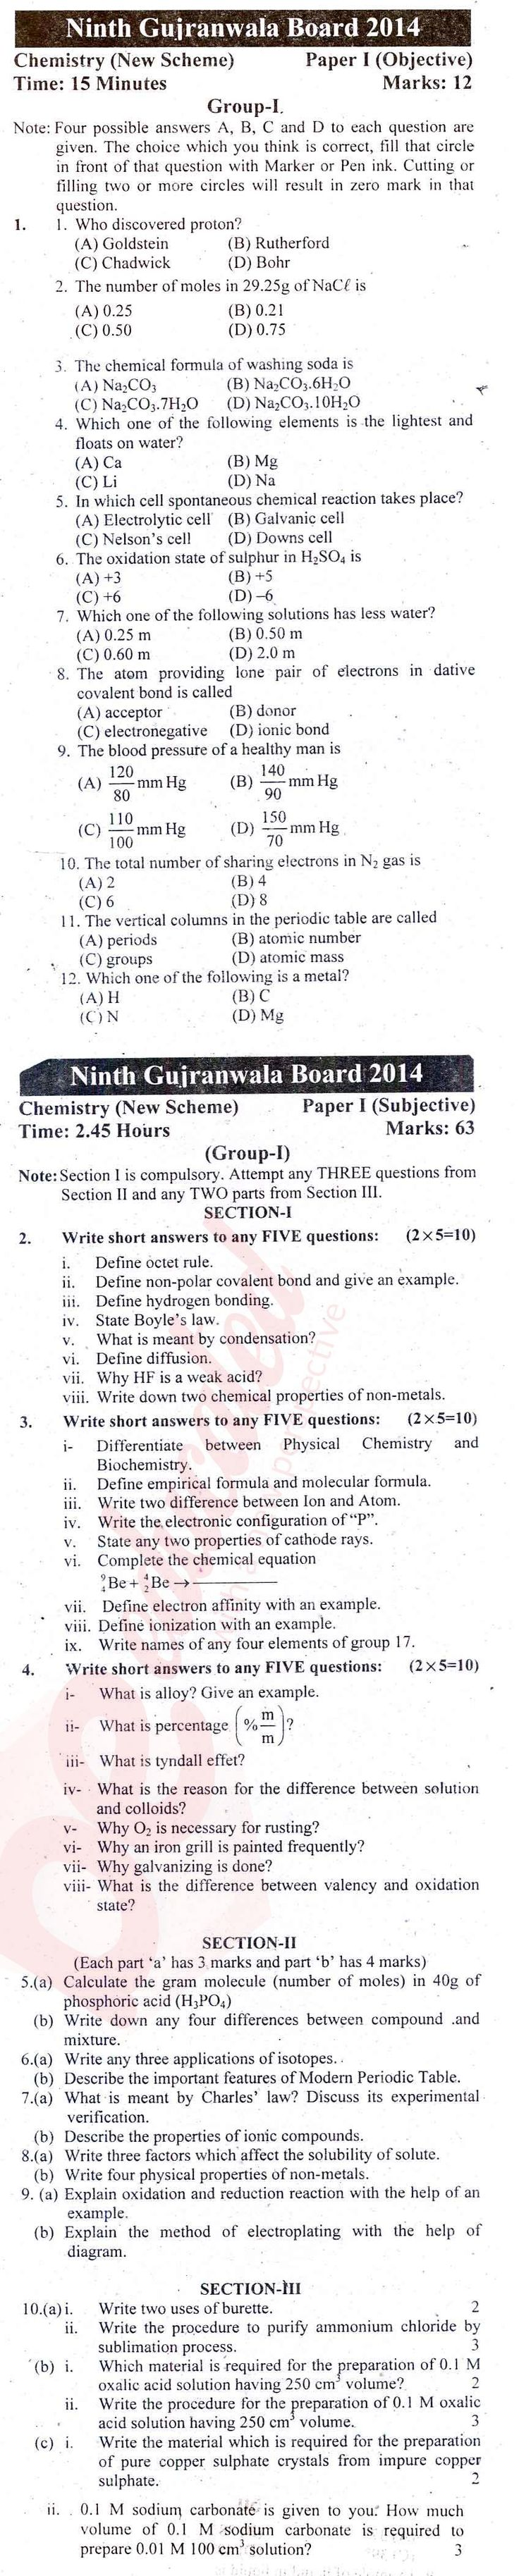 Chemistry 9th English Medium Past Paper Group 1 BISE Gujranwala 2014